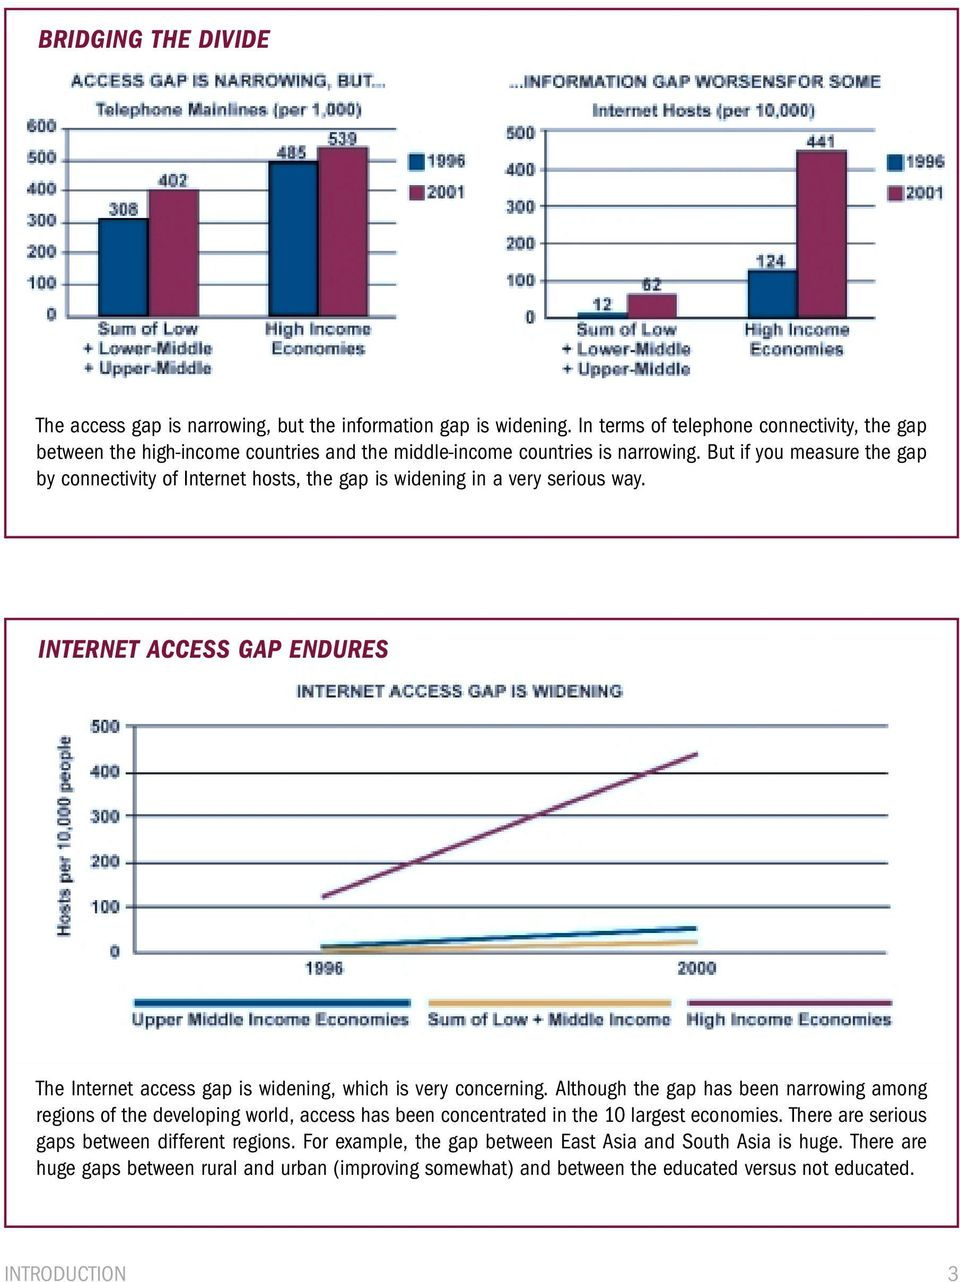 But if you measure the gap by connectivity of Internet hosts, the gap is widening in a very serious way. INTERNET ACCESS GAP ENDURES The Internet access gap is widening, which is very concerning.